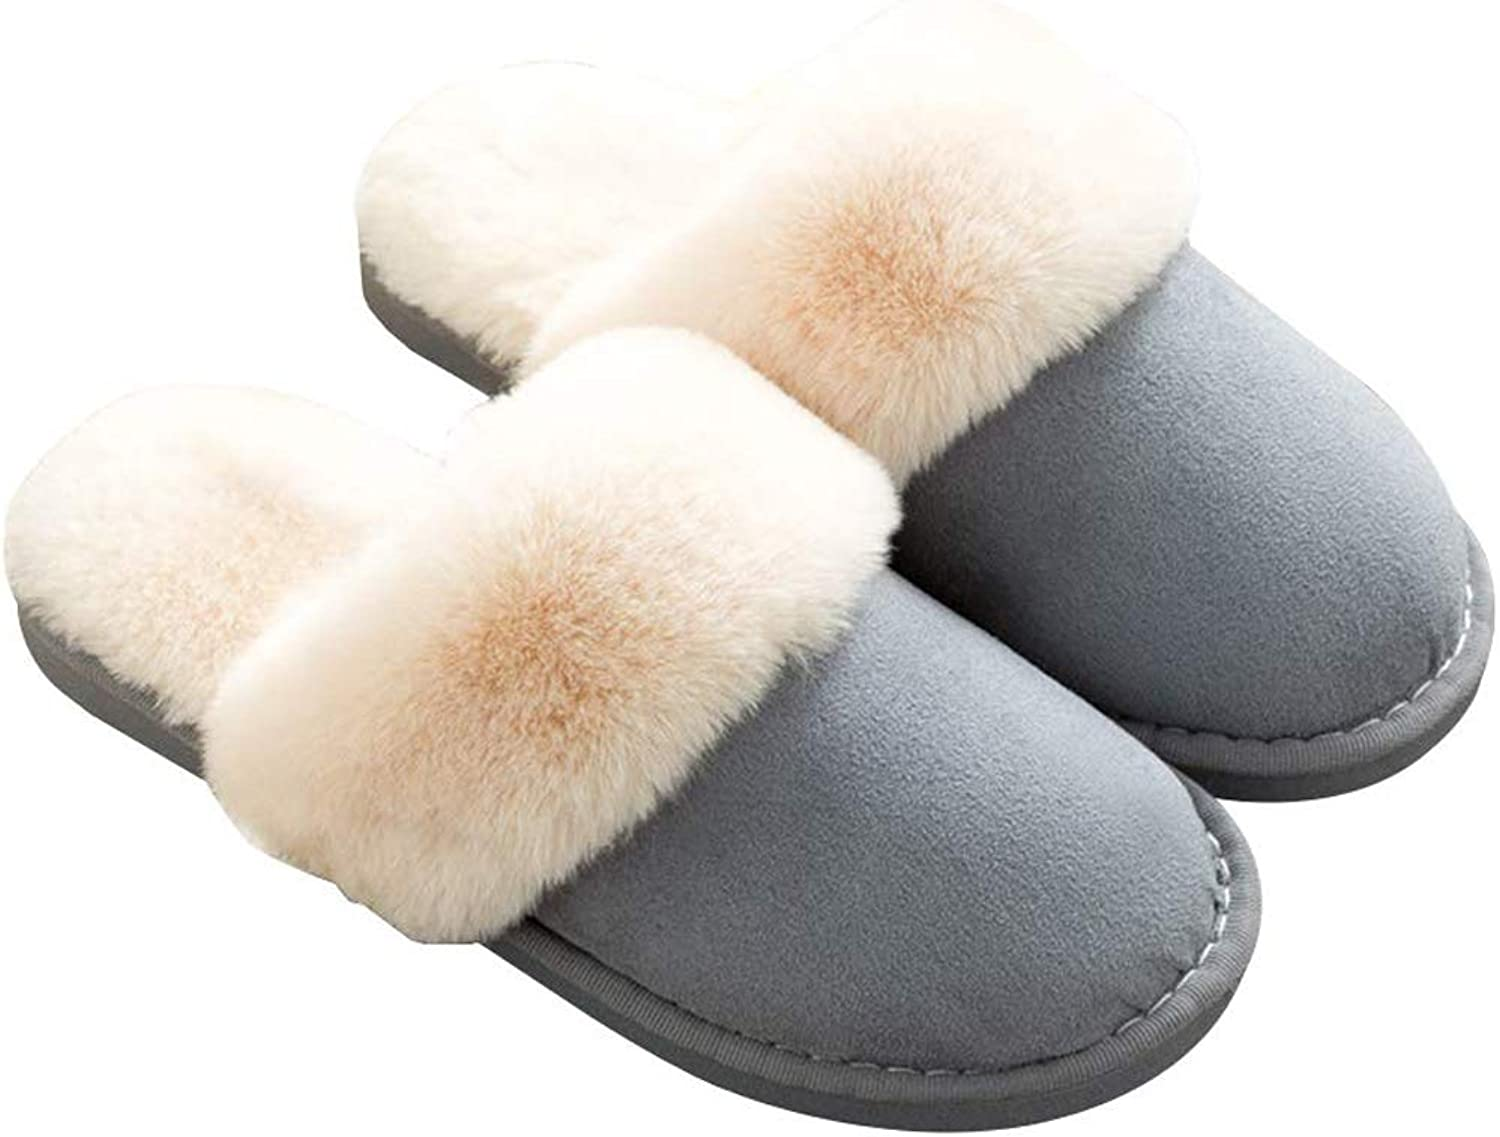 Women Slippers Memory Foam Non-Slip Fluffy Fur Lined Slip on Winter House shoes